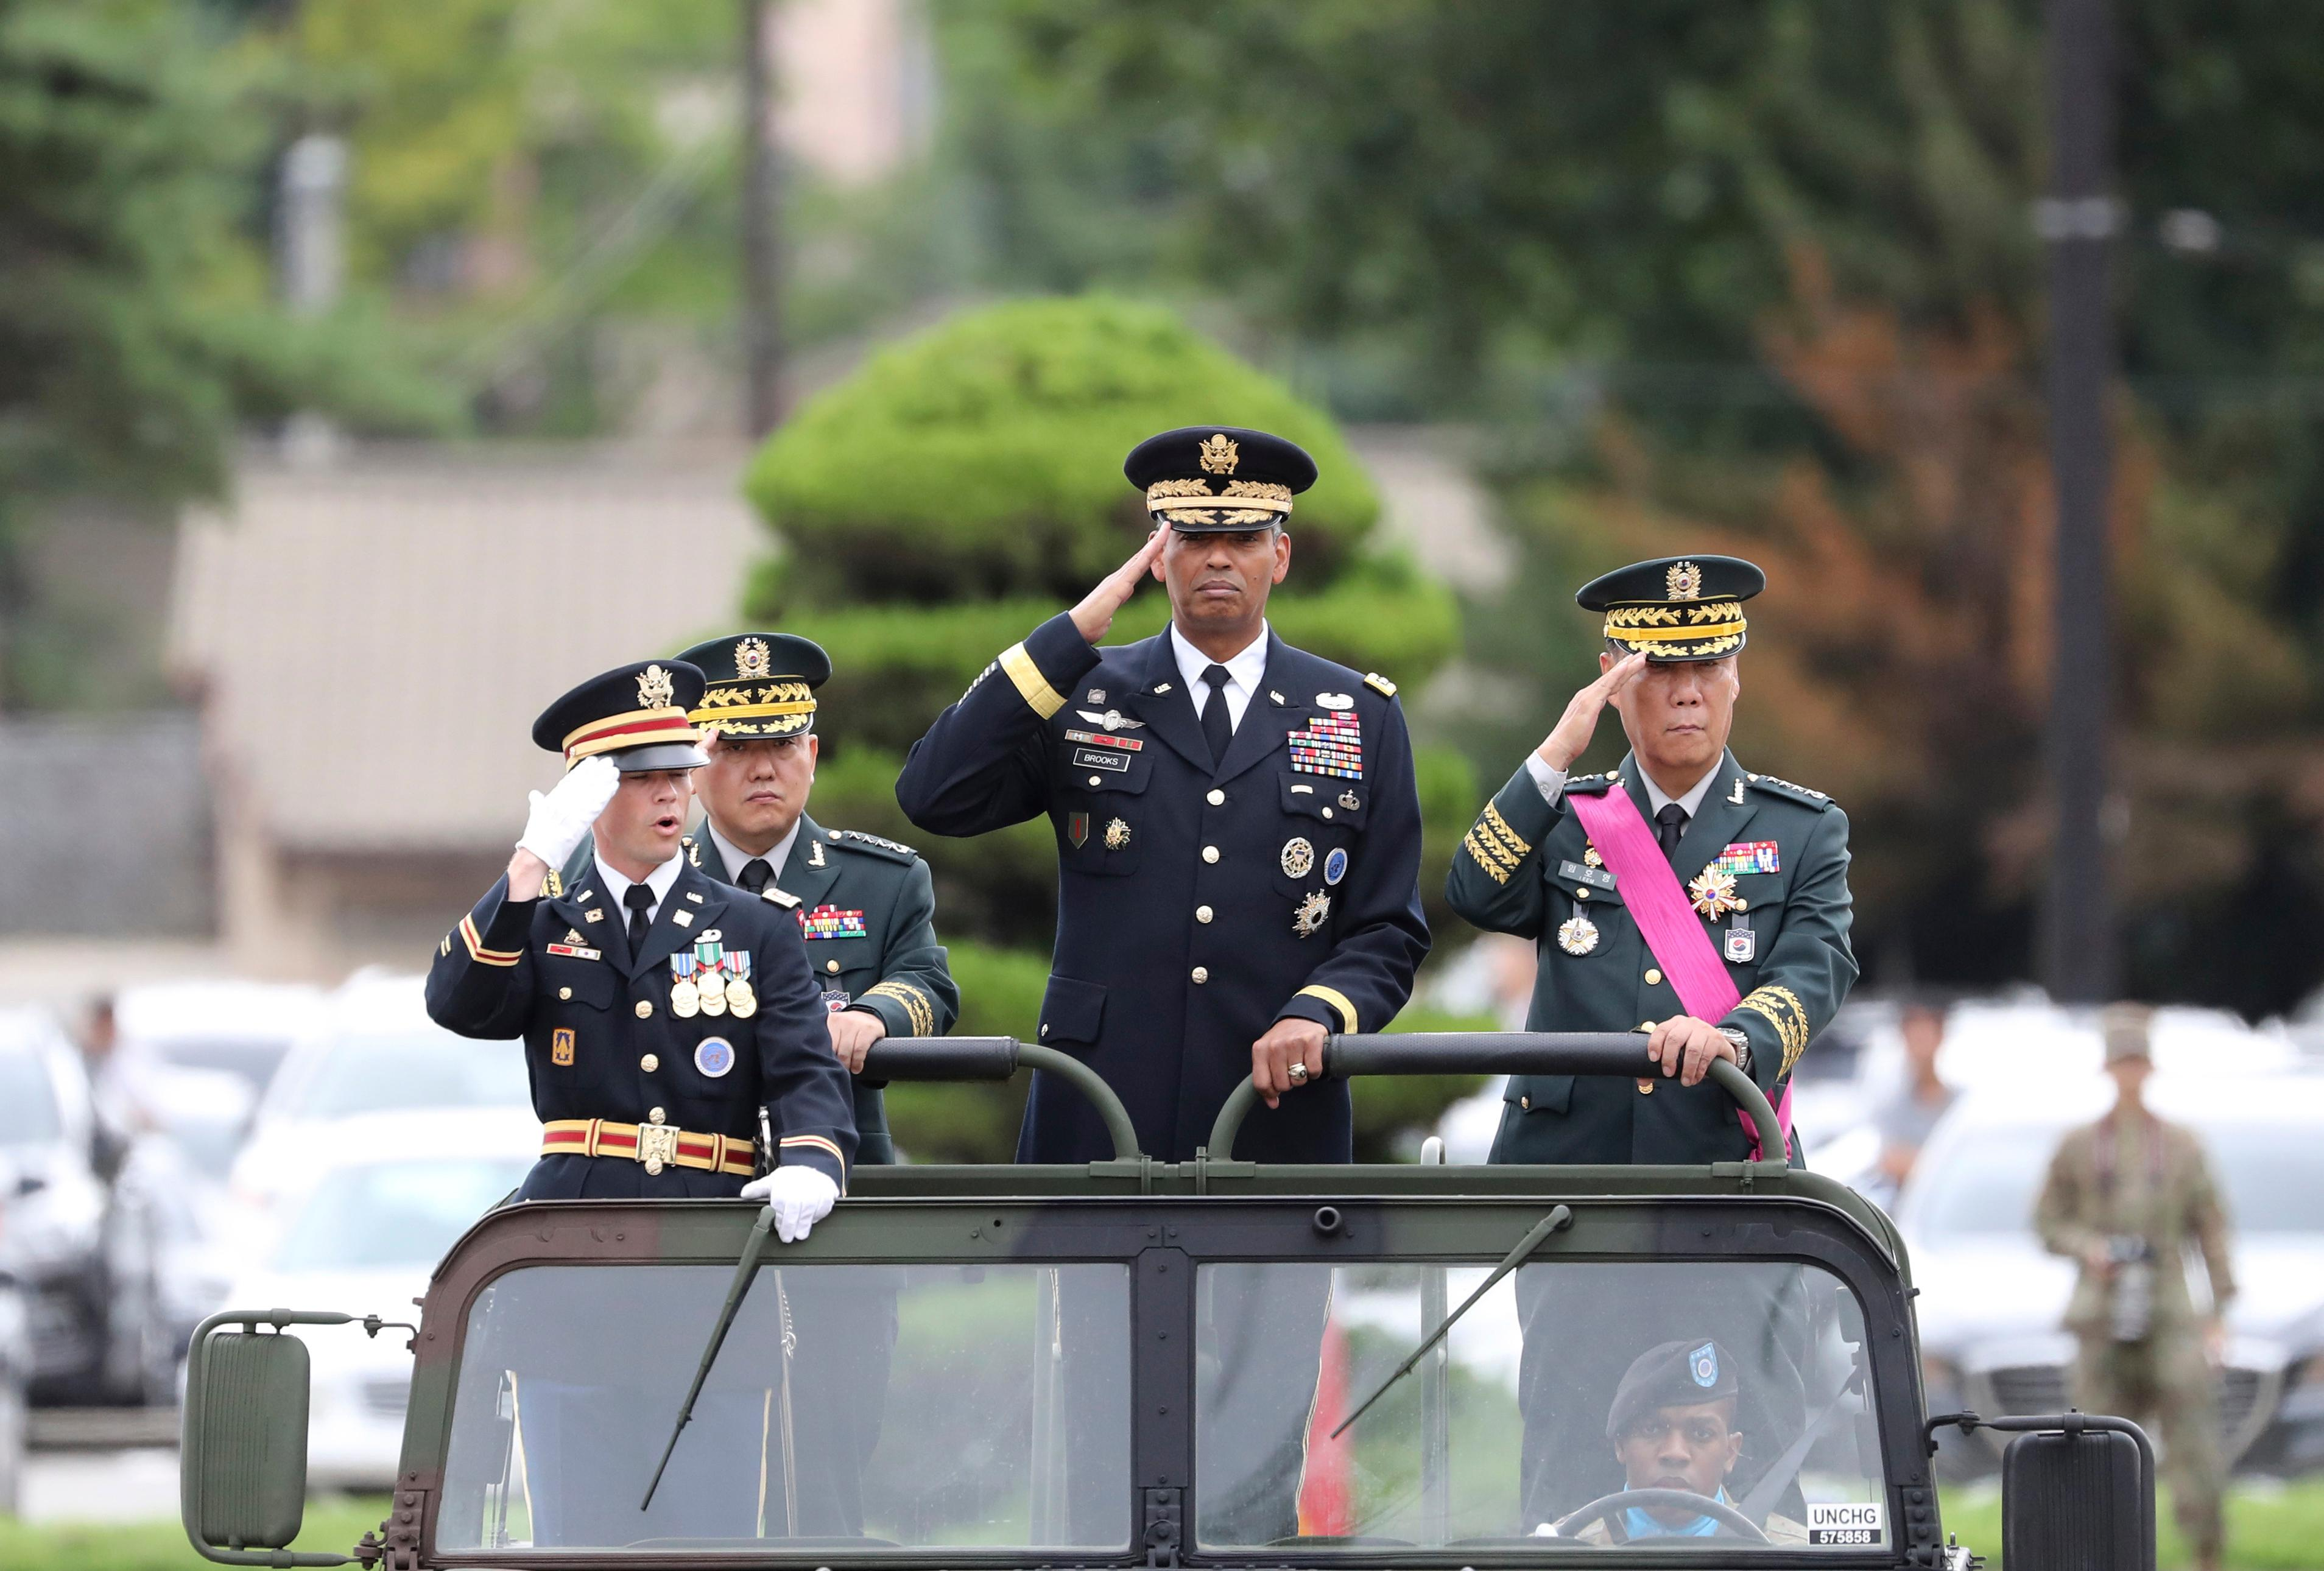 U.S. Gen. Vincent Brooks, commander of Combined Forces Command, center, salutes with incoming Deputy Commander Gen. Kim Byung-joo, left rear, and outgoing Deputy Commander Gen. Leem Ho-young, right, in a car, as they inspect honor guards during a change of command and change of responsibility ceremony for Deputy Commander of the South Korea-U.S. Combined Force Command at Yongsan Garrison, a U.S. military base, in Seoul, South Korea, Friday, Aug. 11, 2017. U.S. and South Korean military officials plan to move ahead with large-scale exercises later this month that North Korea, now finalizing plans to launch a salvo of missiles toward Guam, claims are a rehearsal for war. (AP Photo/Lee Jin-man)